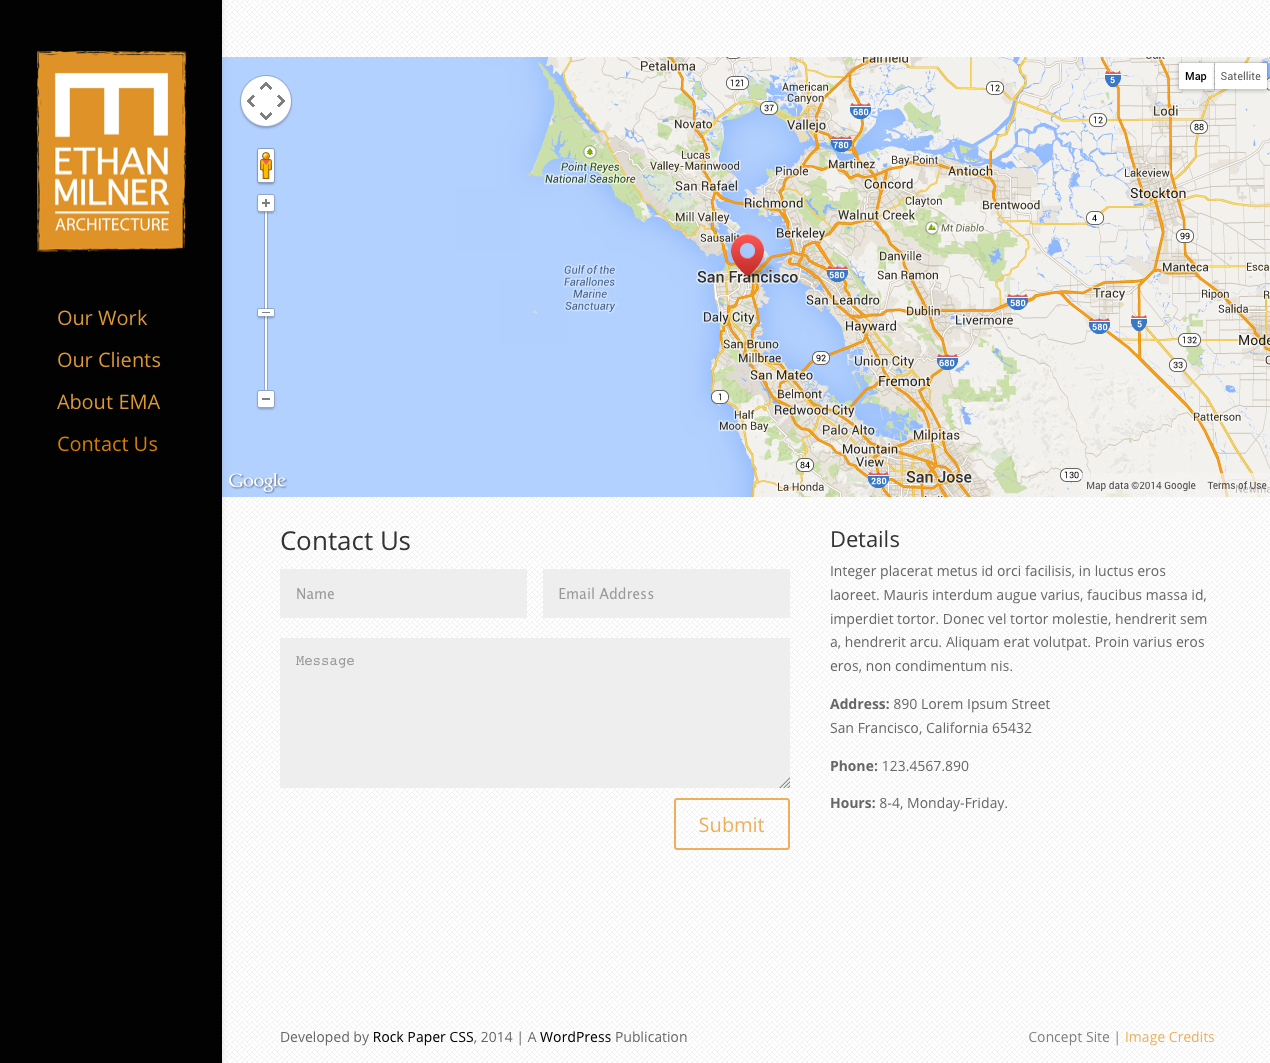 Screenshot of Web Site for Architect - Ethan Milner - Contact Page with Google map